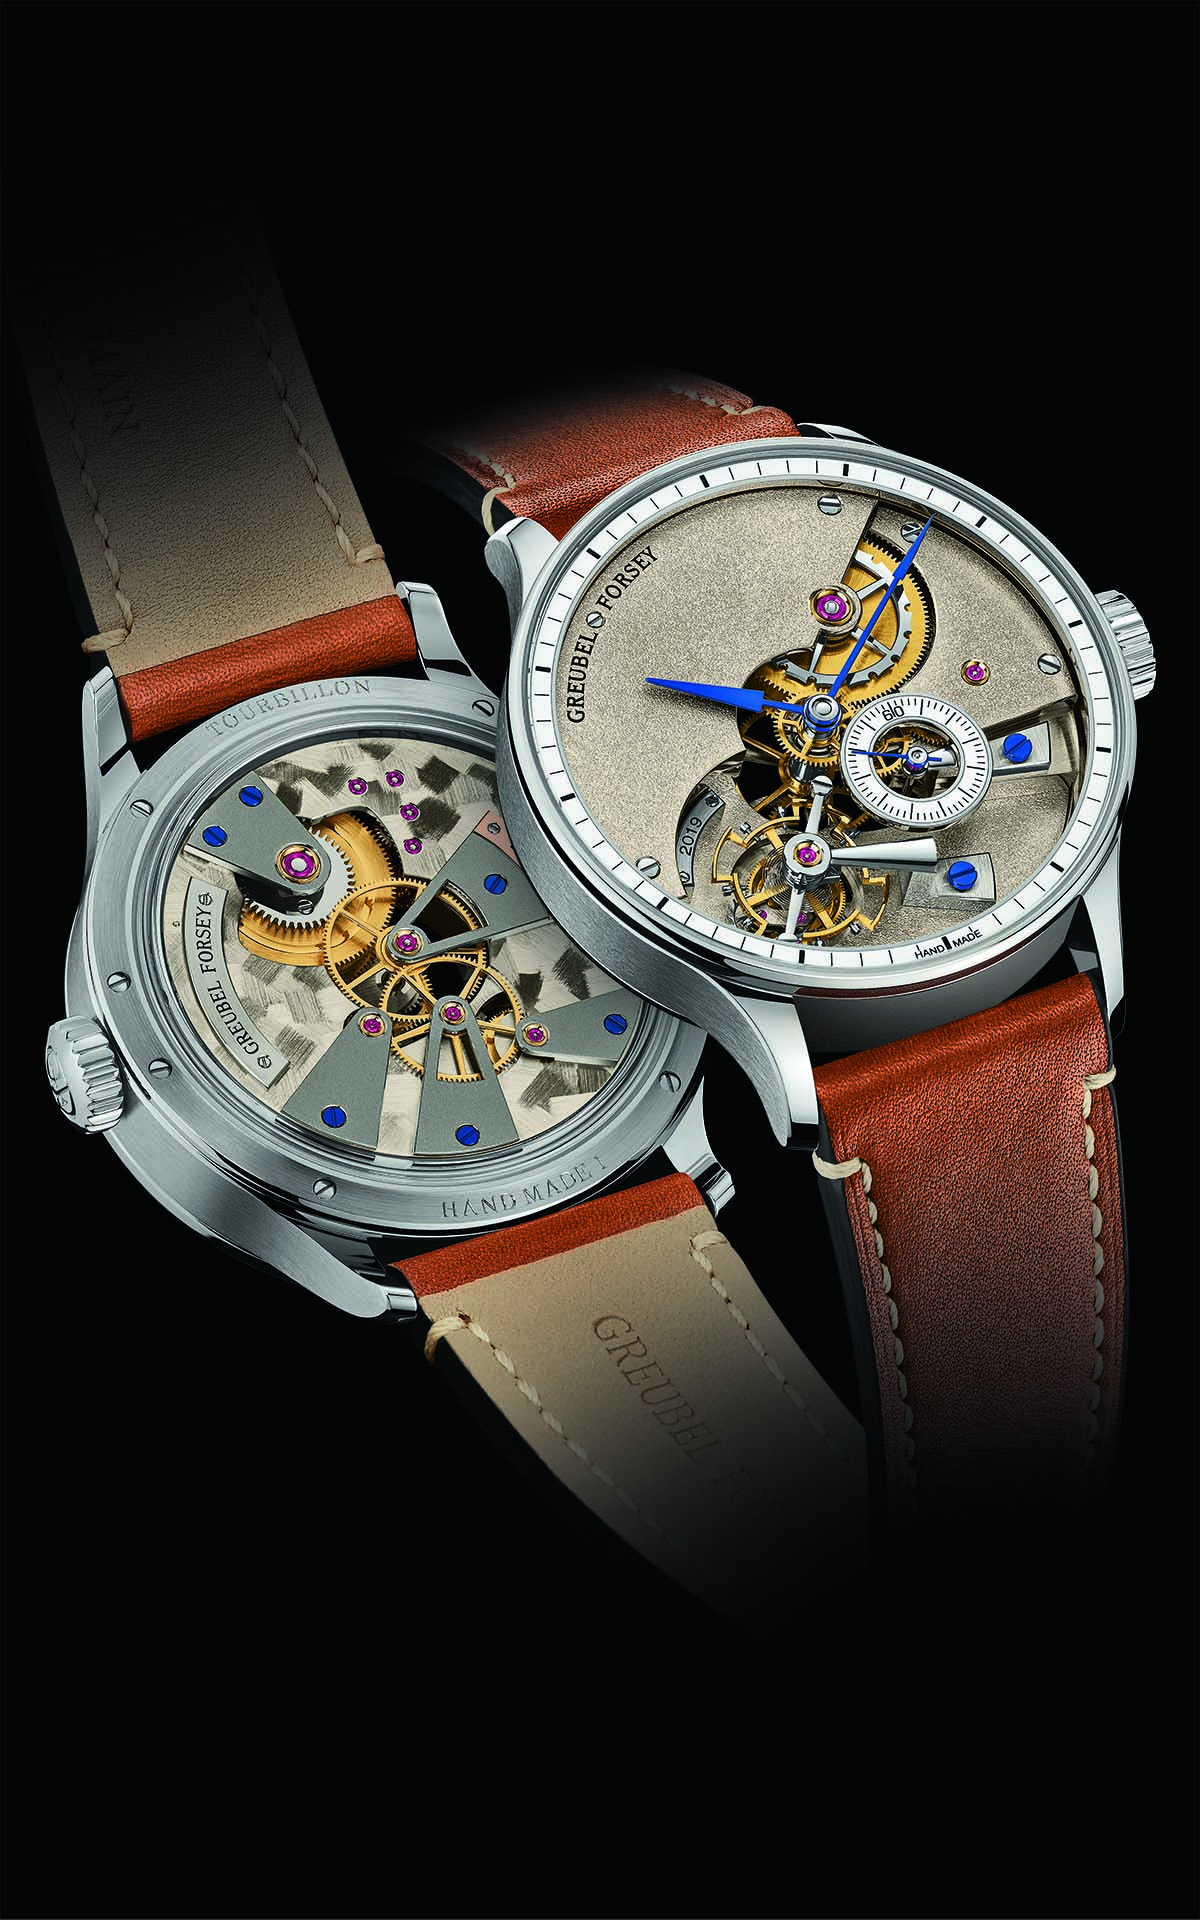 Greubel Forsey Hand Made 1 frente y trasera fx